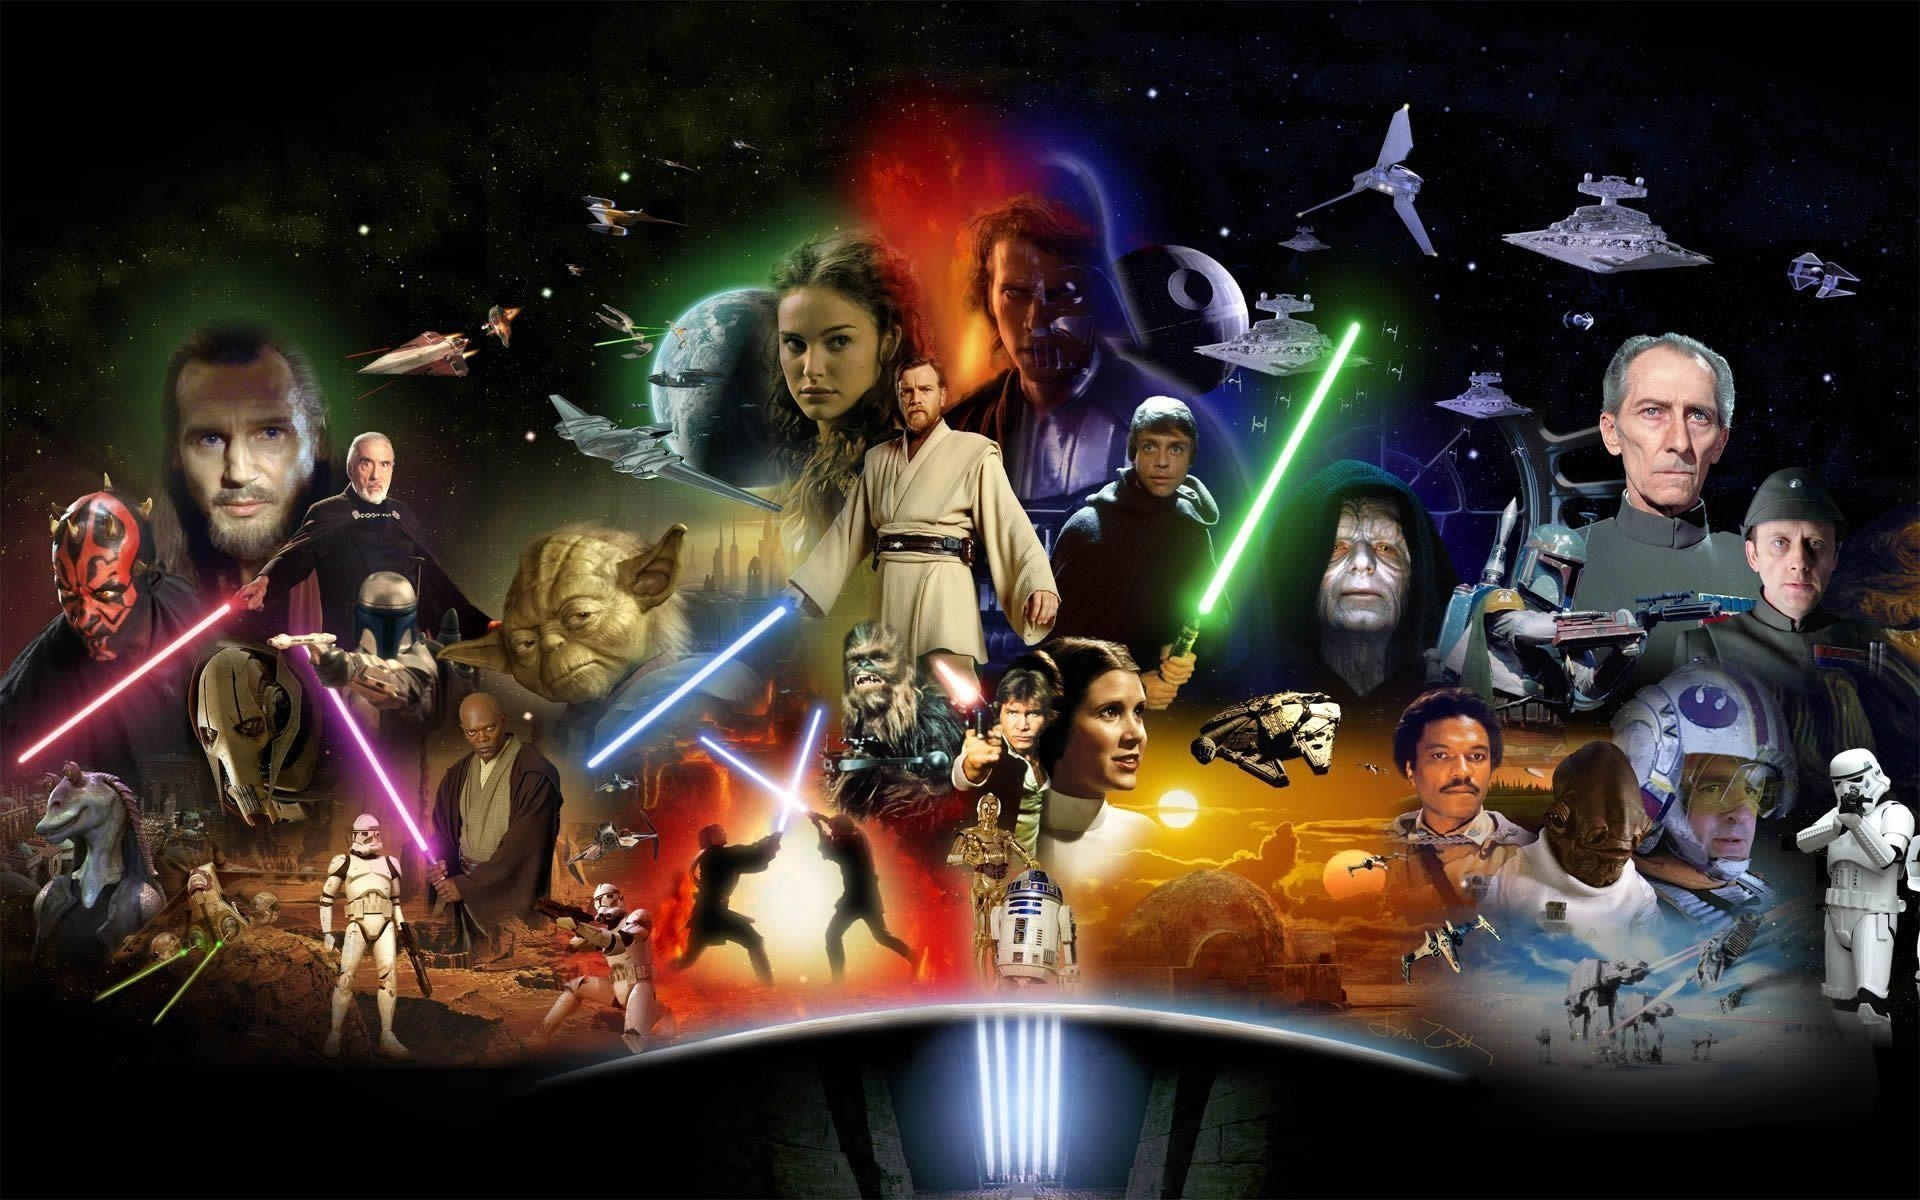 epic star wars wallpapers - wallpaper cave